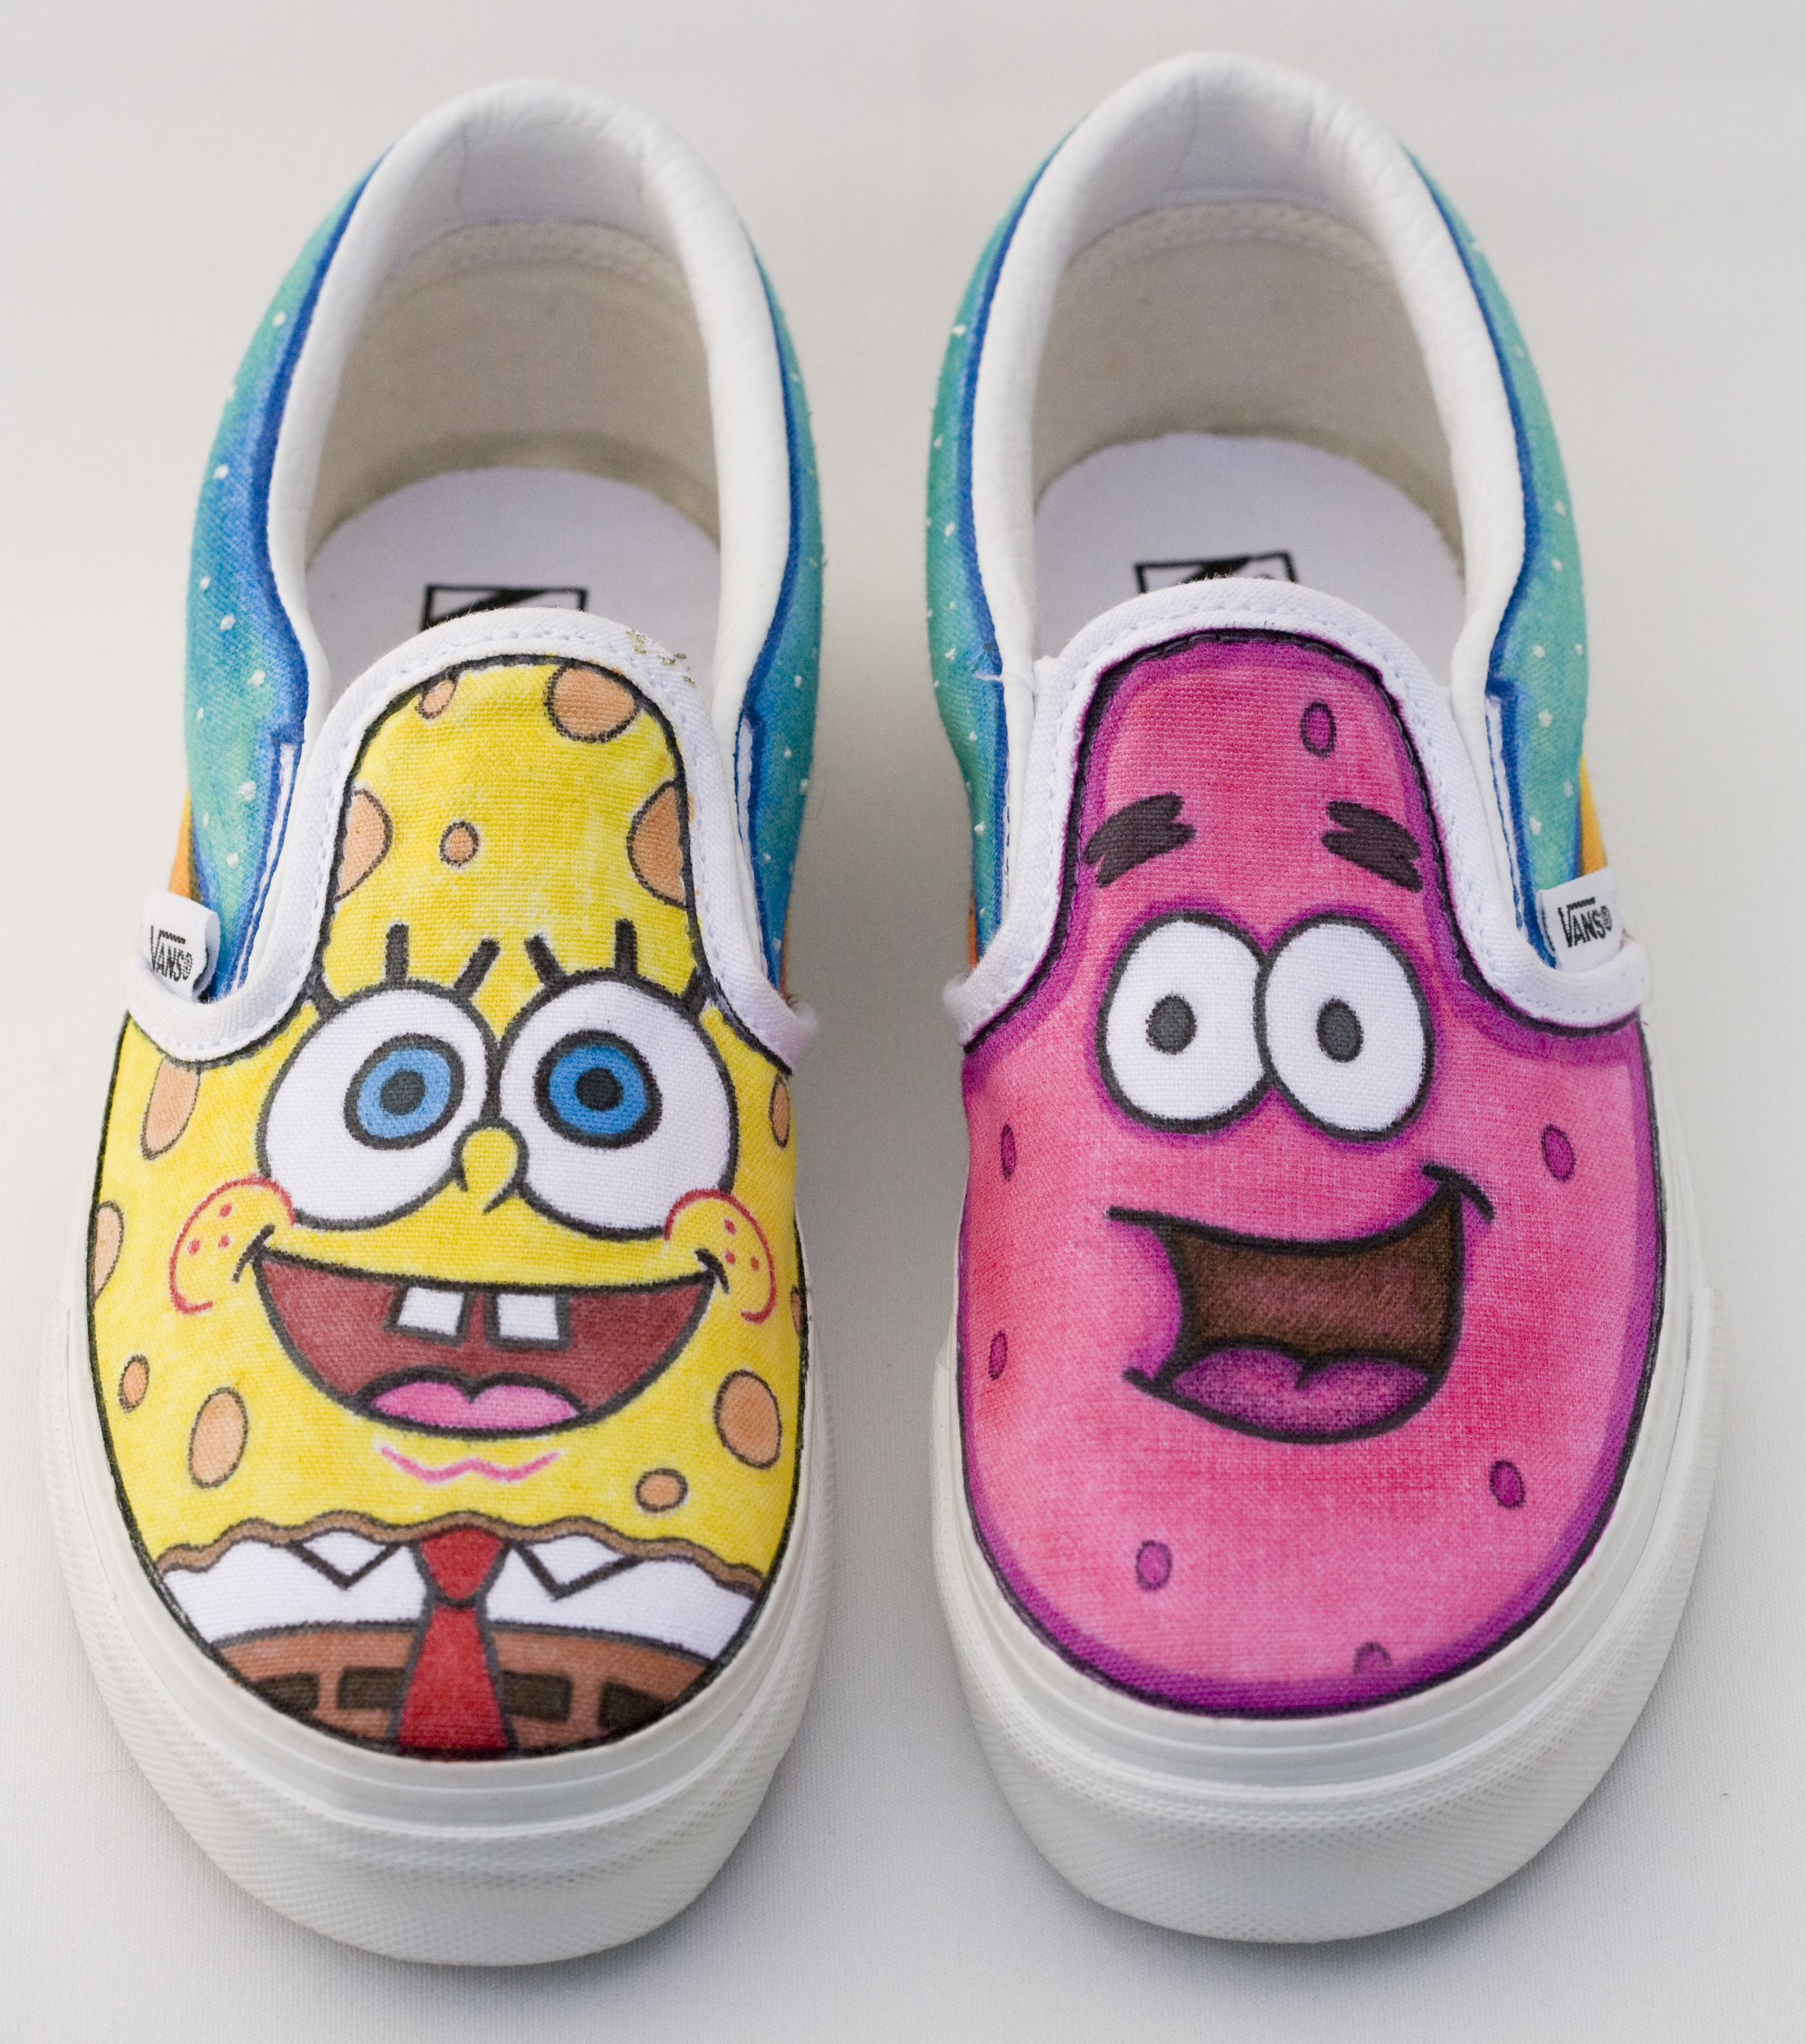 Awesome Spongebob and Patrick shoe!